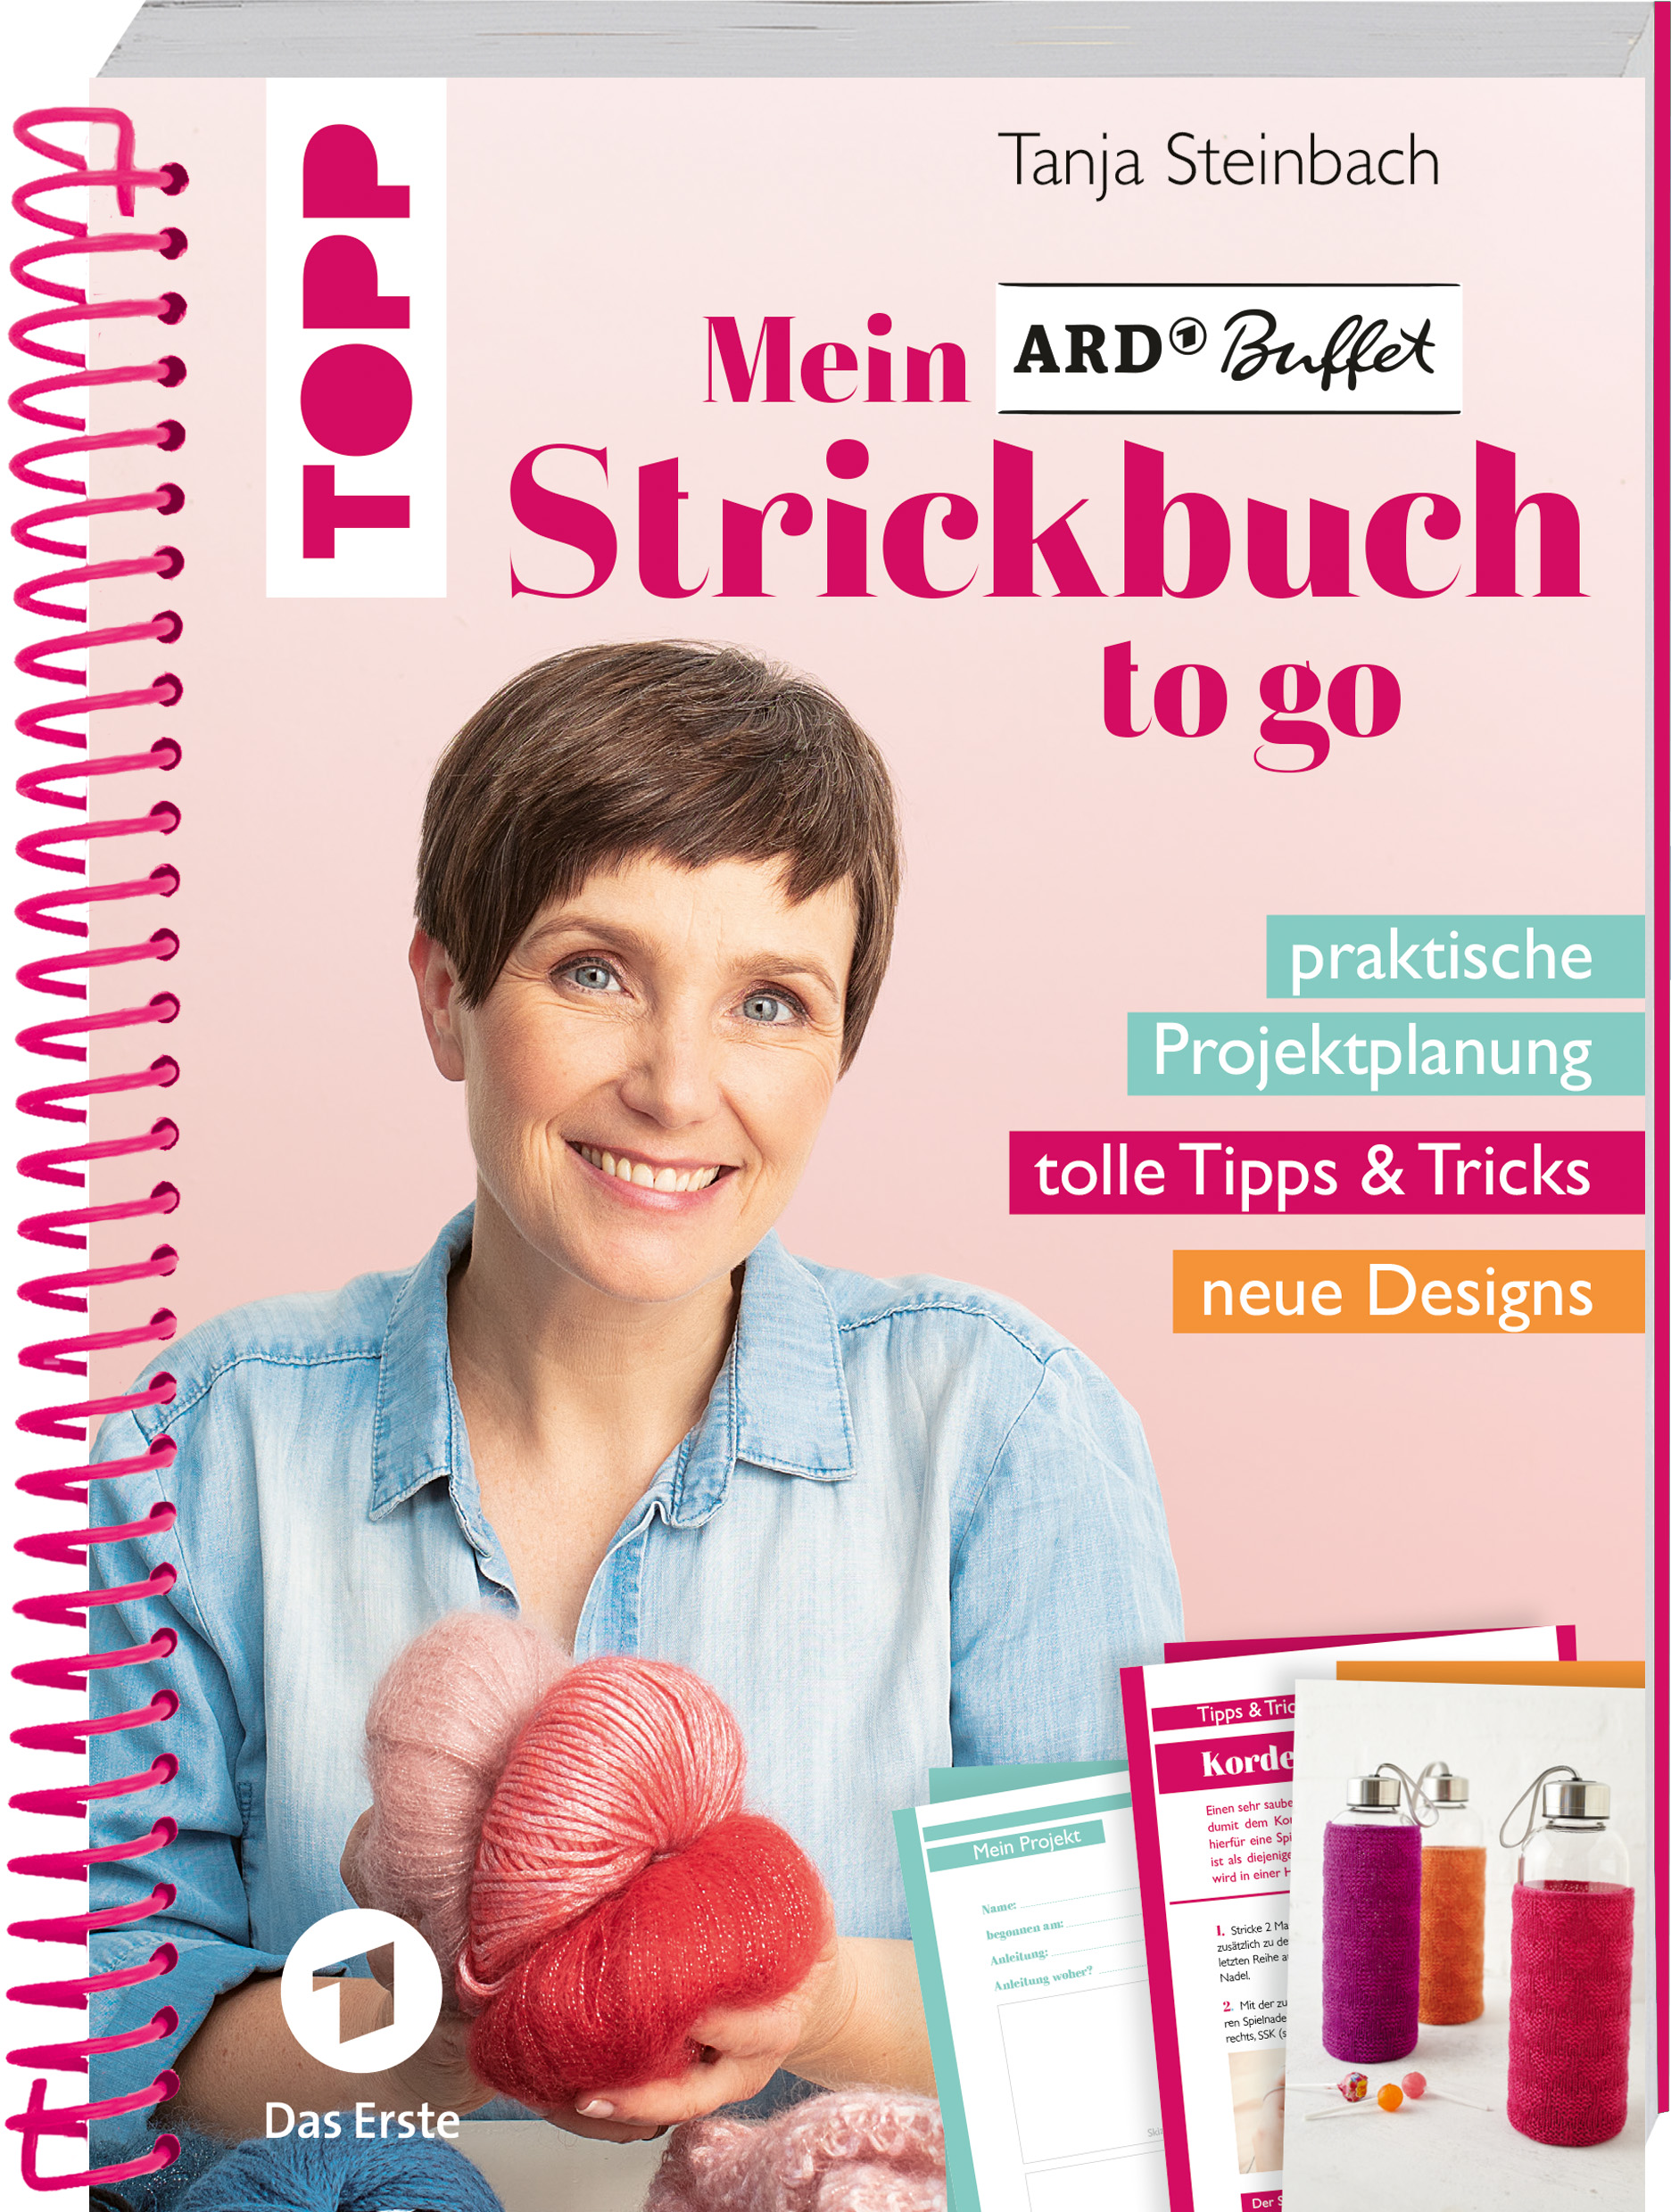 Topp 4850 Mein ARD Buffet Strickbuch to go